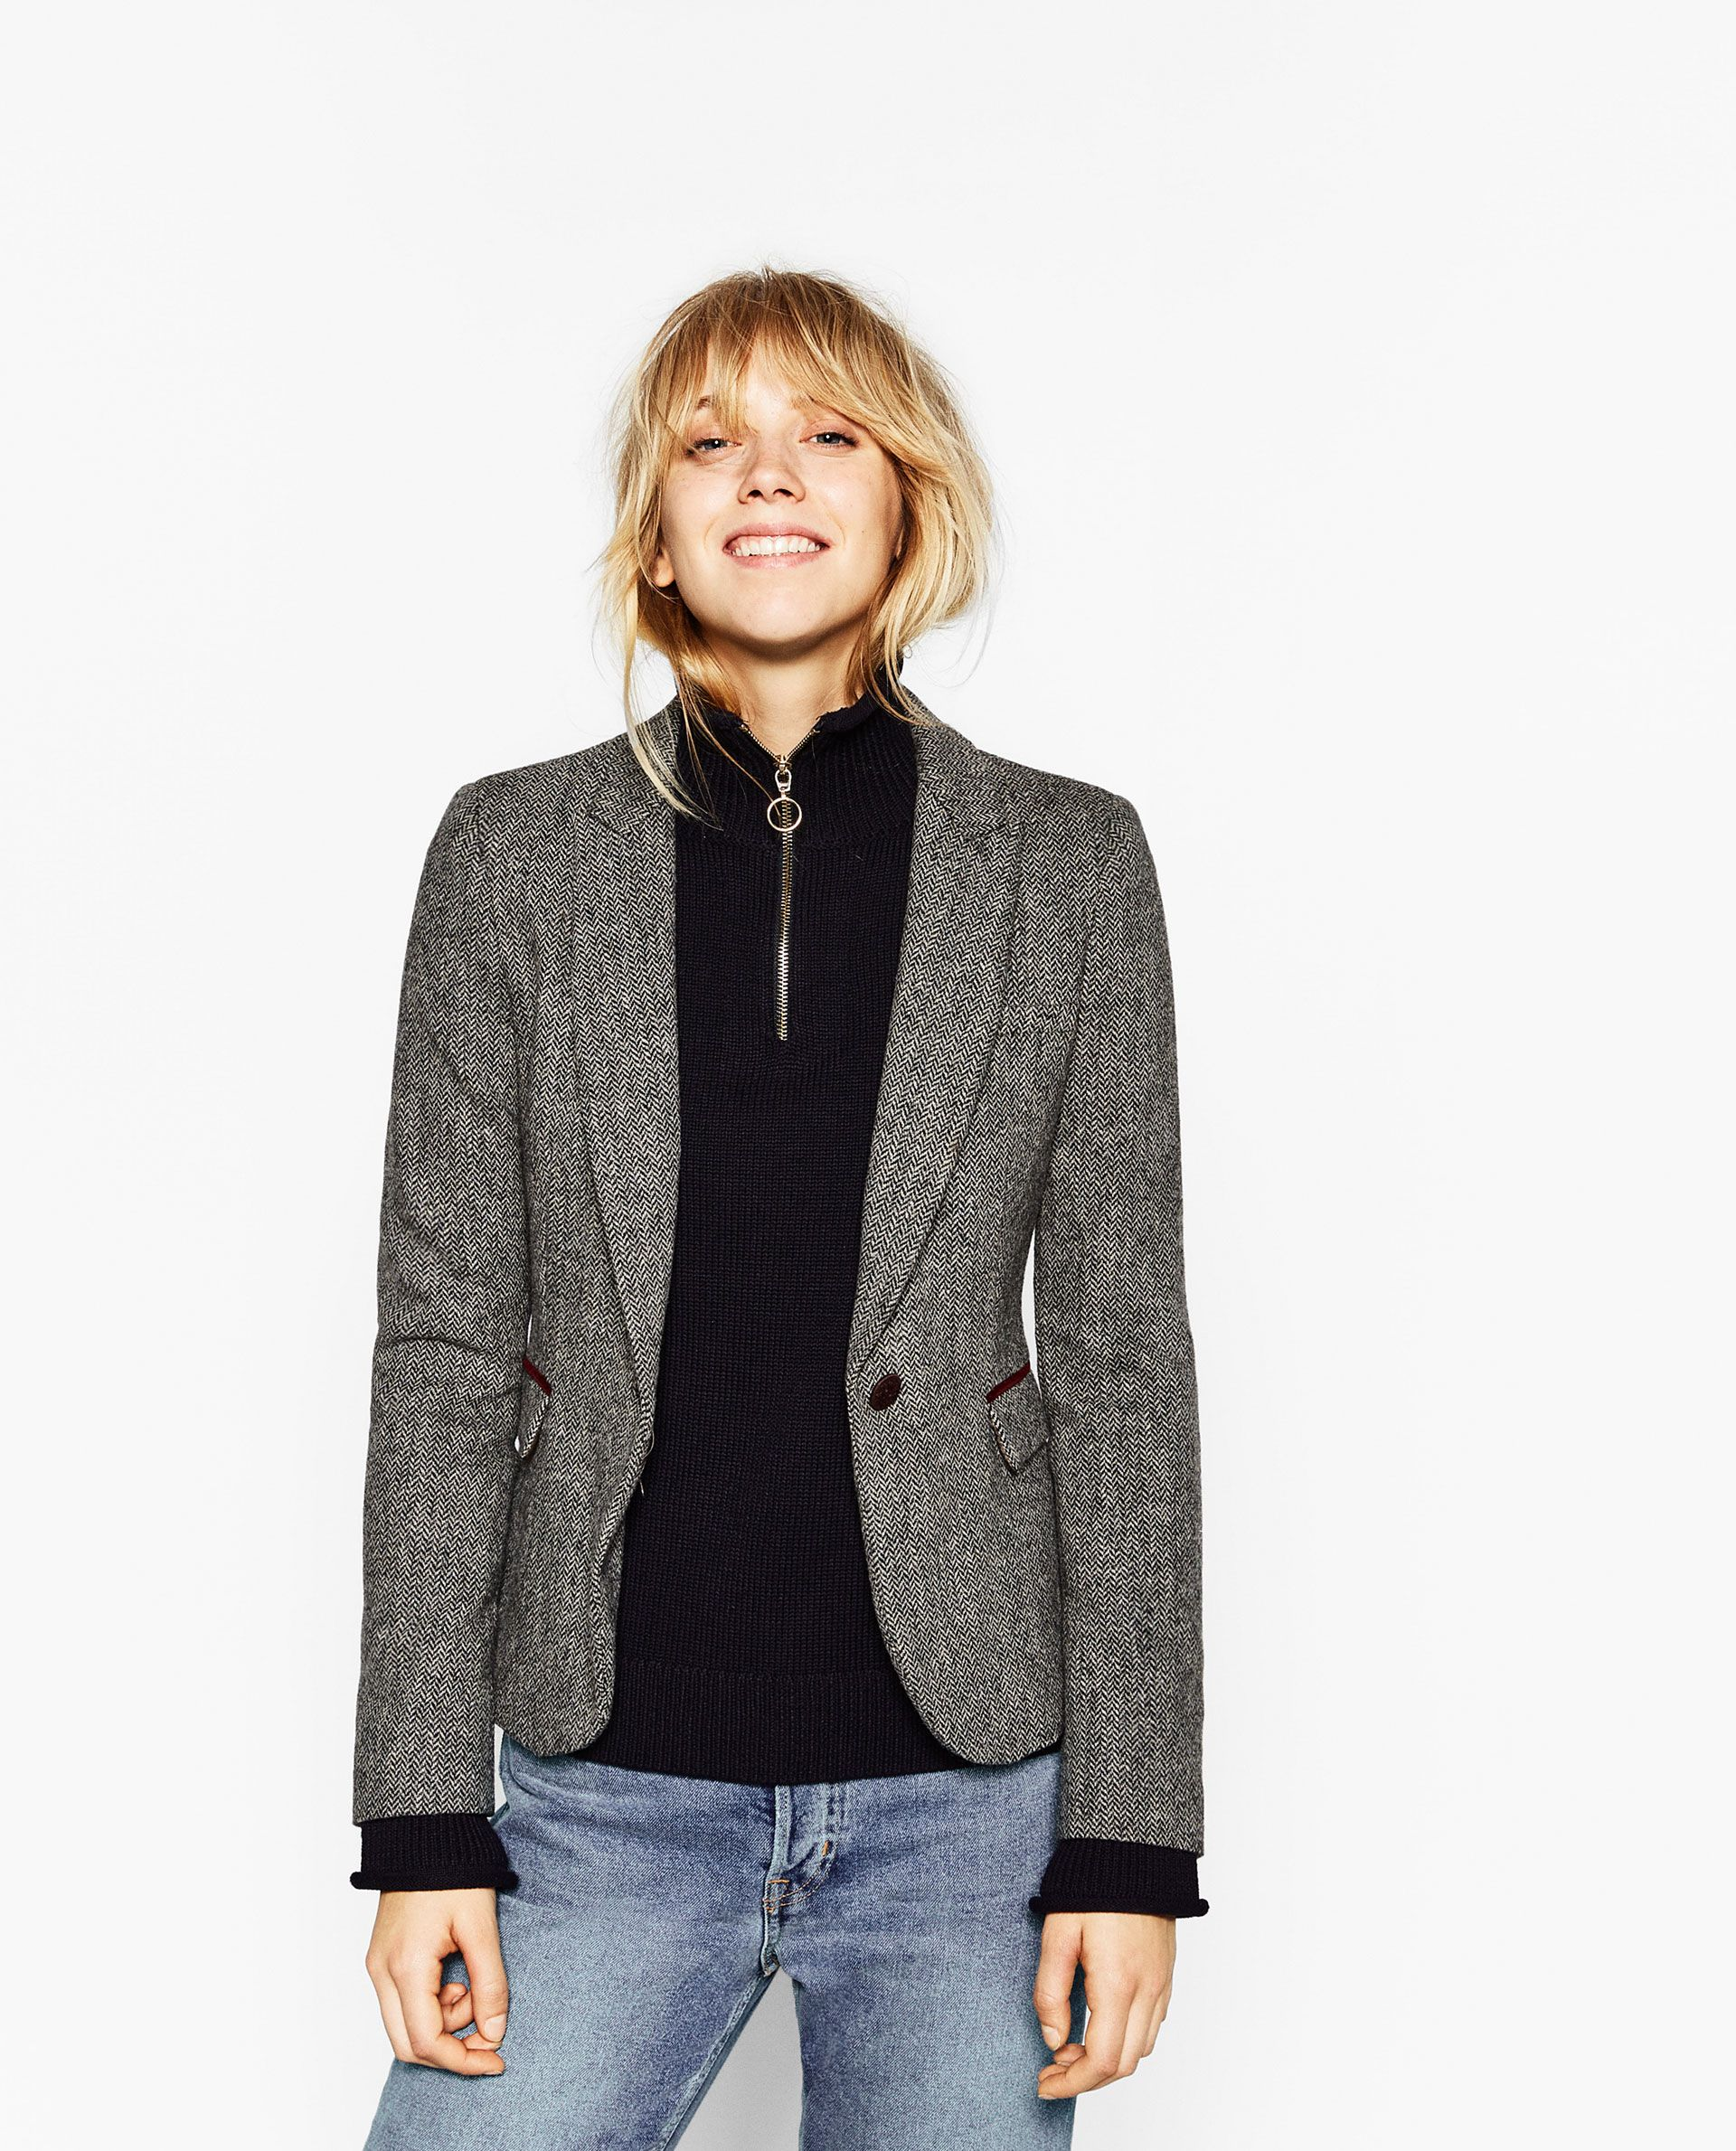 a030542372 ZARA - WOMAN - HERRINGBONE BLAZER WITH ELBOW PATCHES | Fashion ...